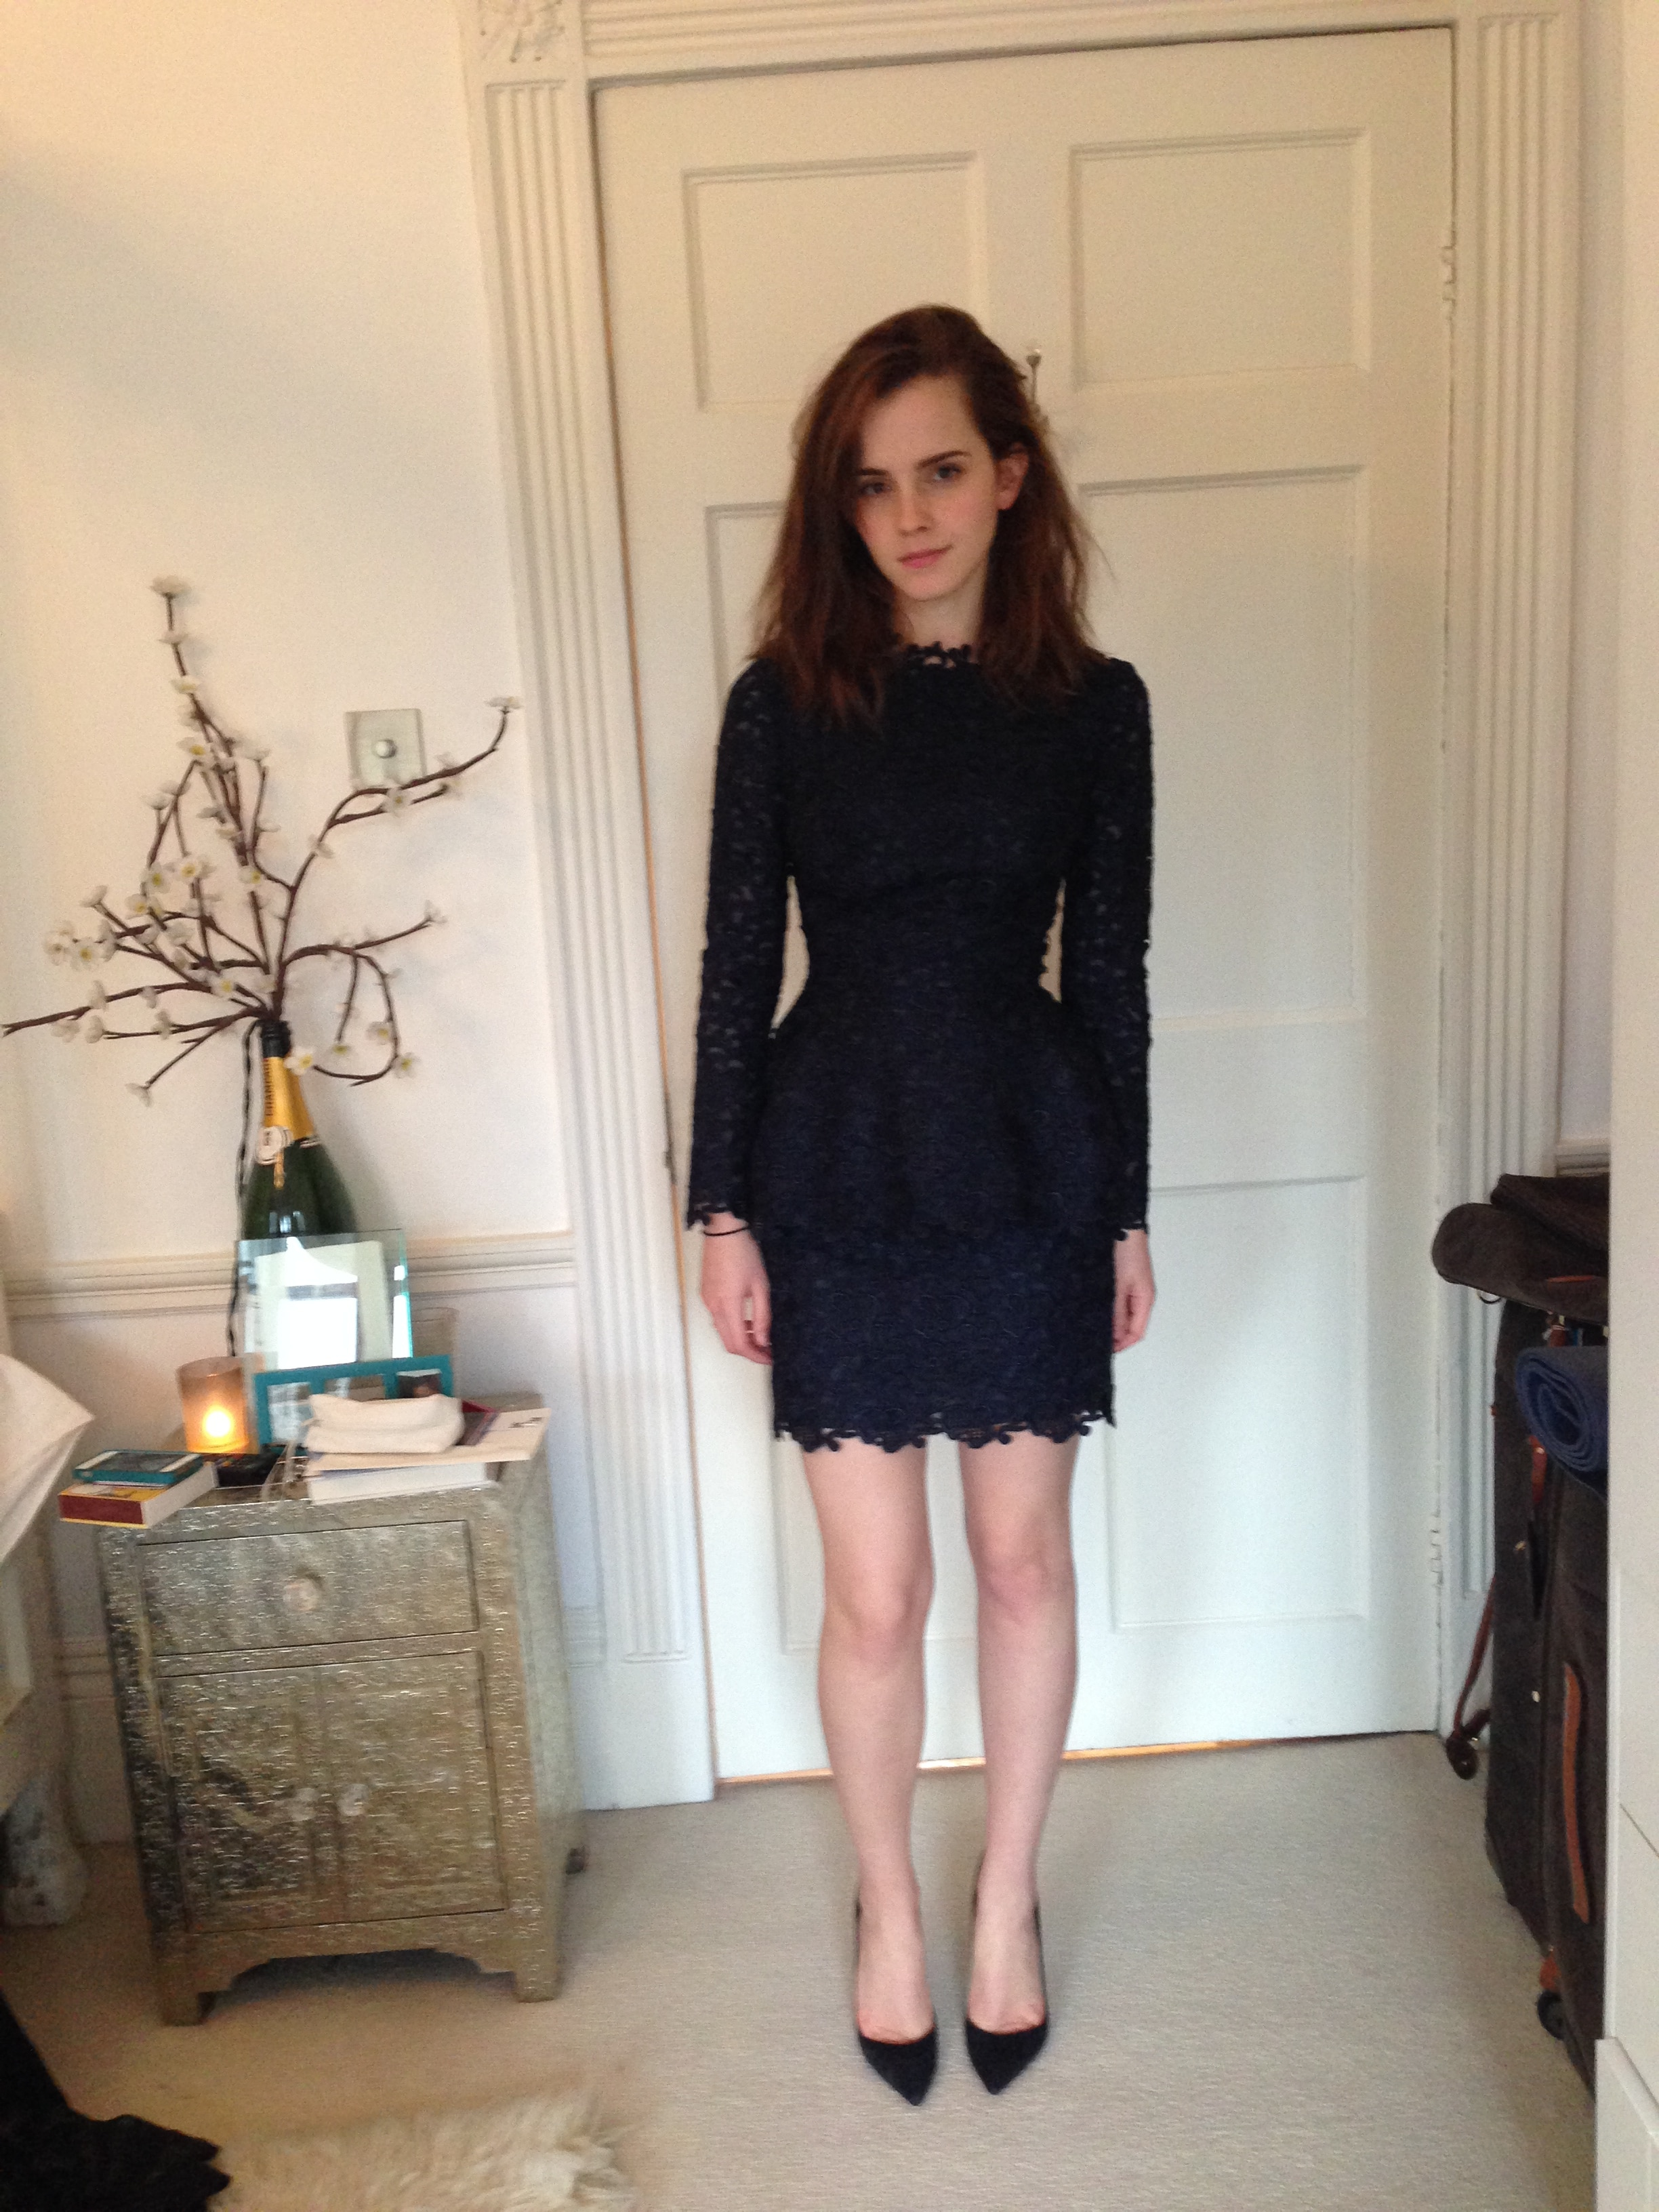 Unseen Emma Watson Nude Leaked Pics  Fappening Collection-1493